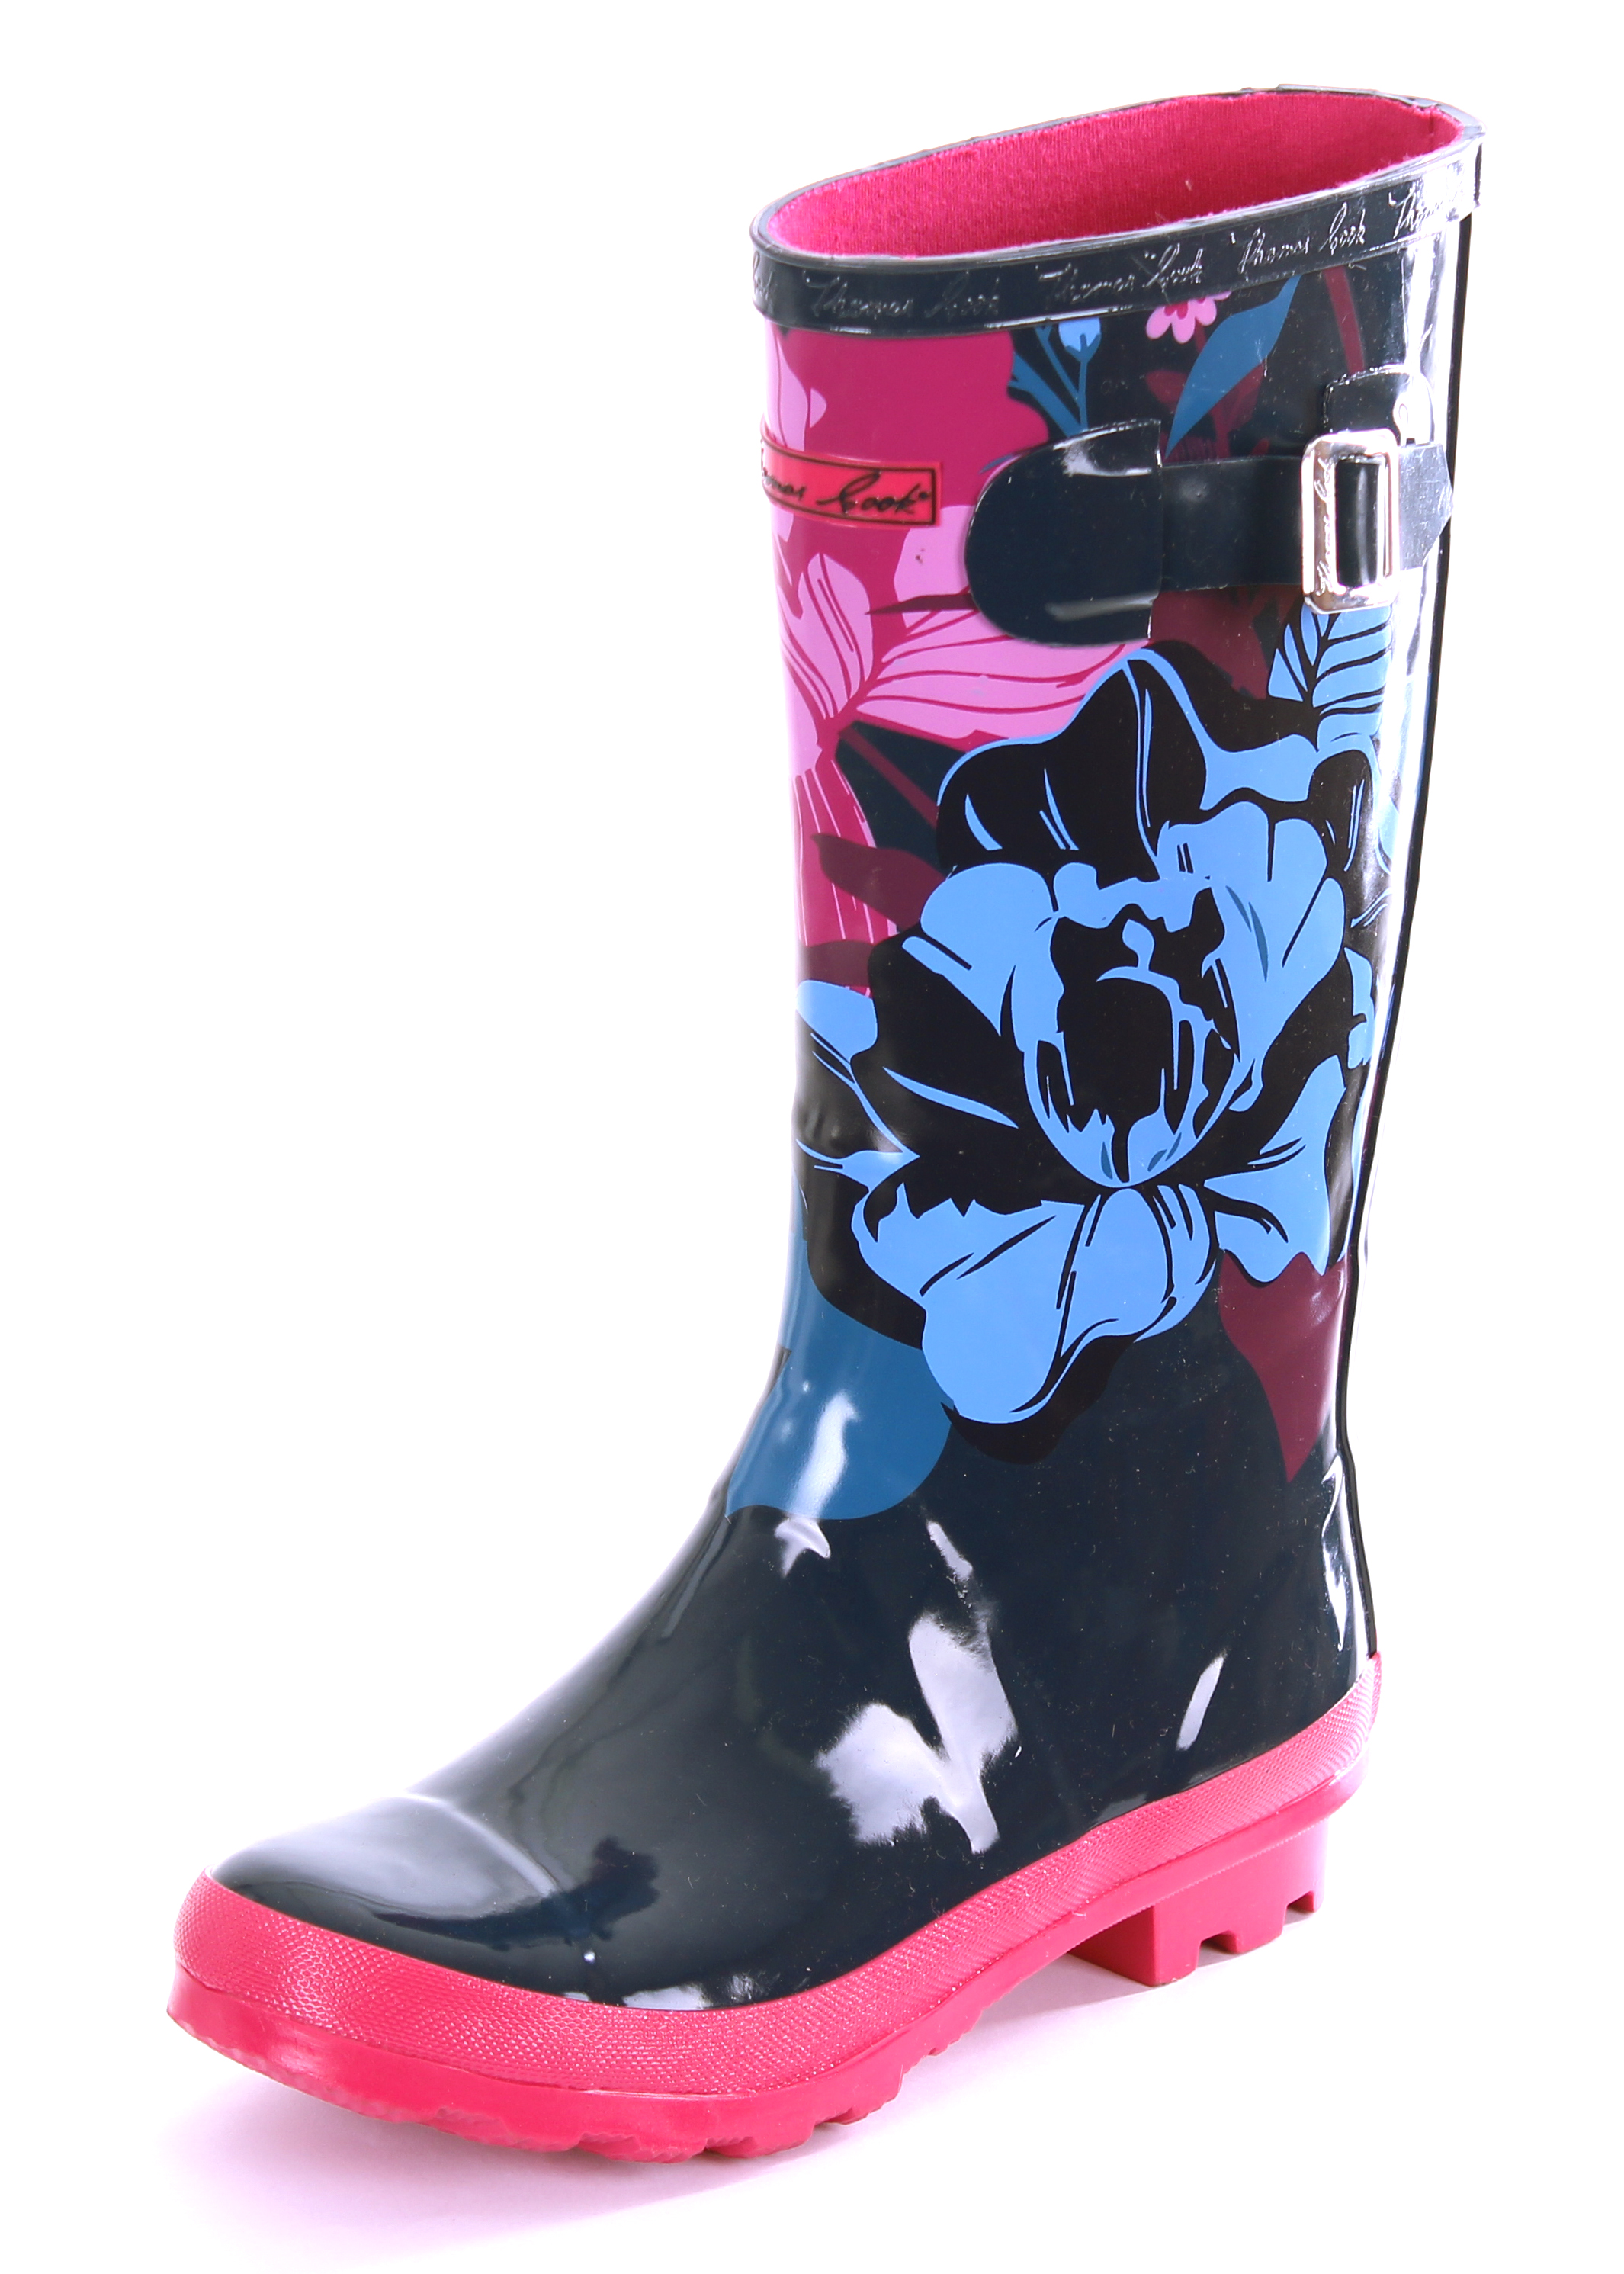 Thomas Cook Deloraine Gumboots